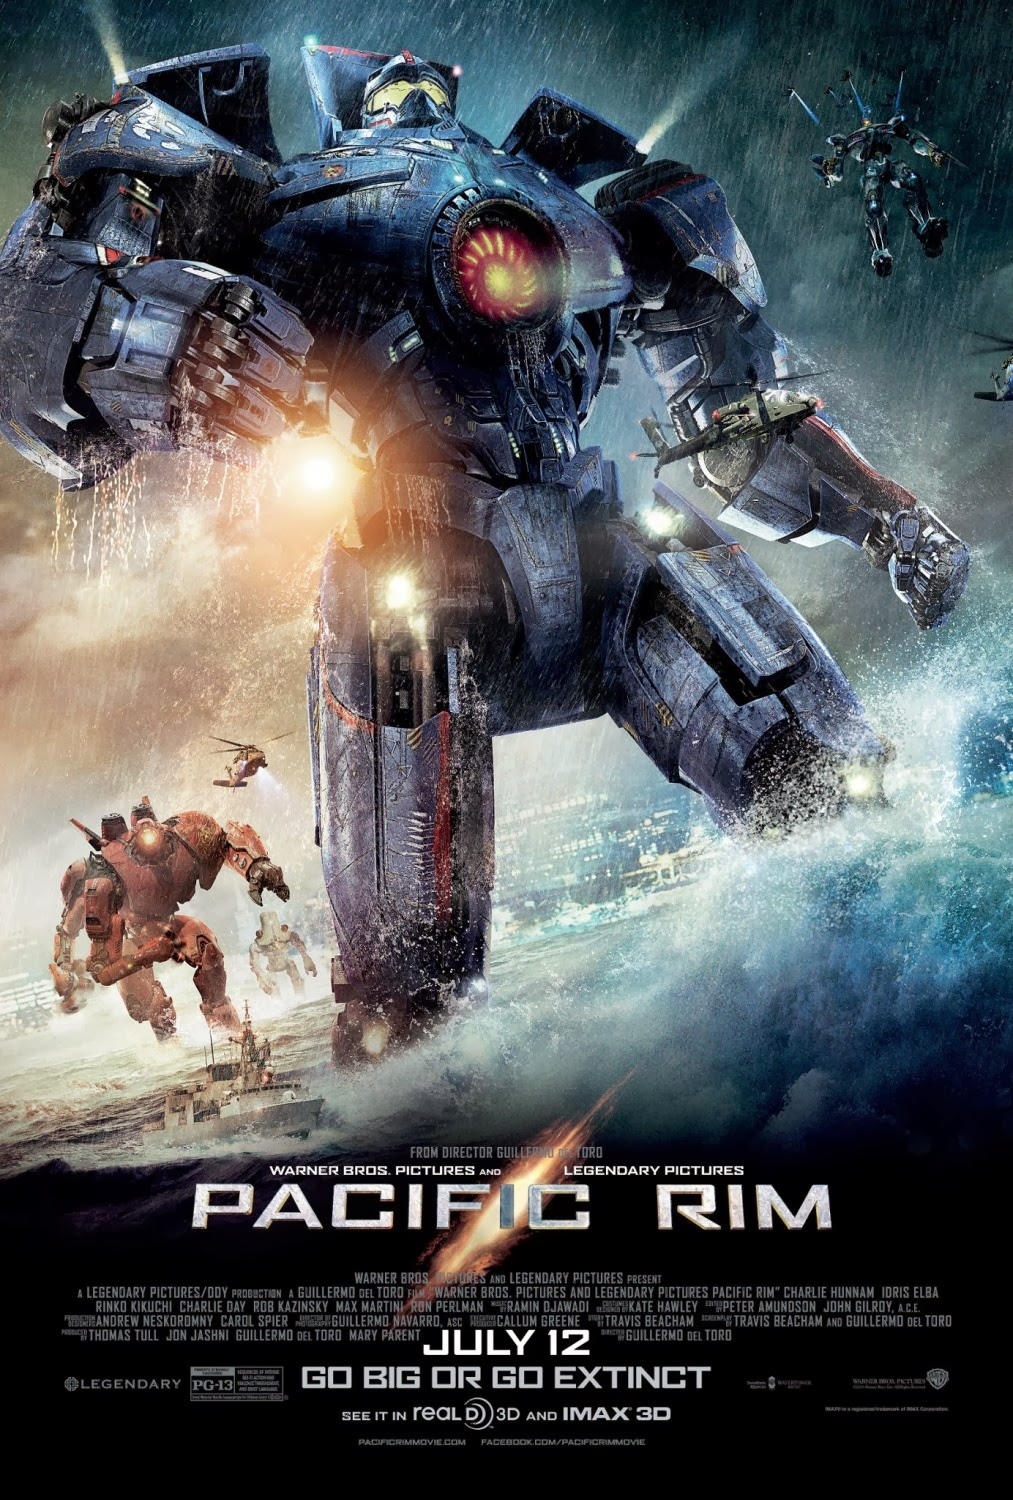 Pacific Rim, Directed by Guillermo del Toro, Movie Poster